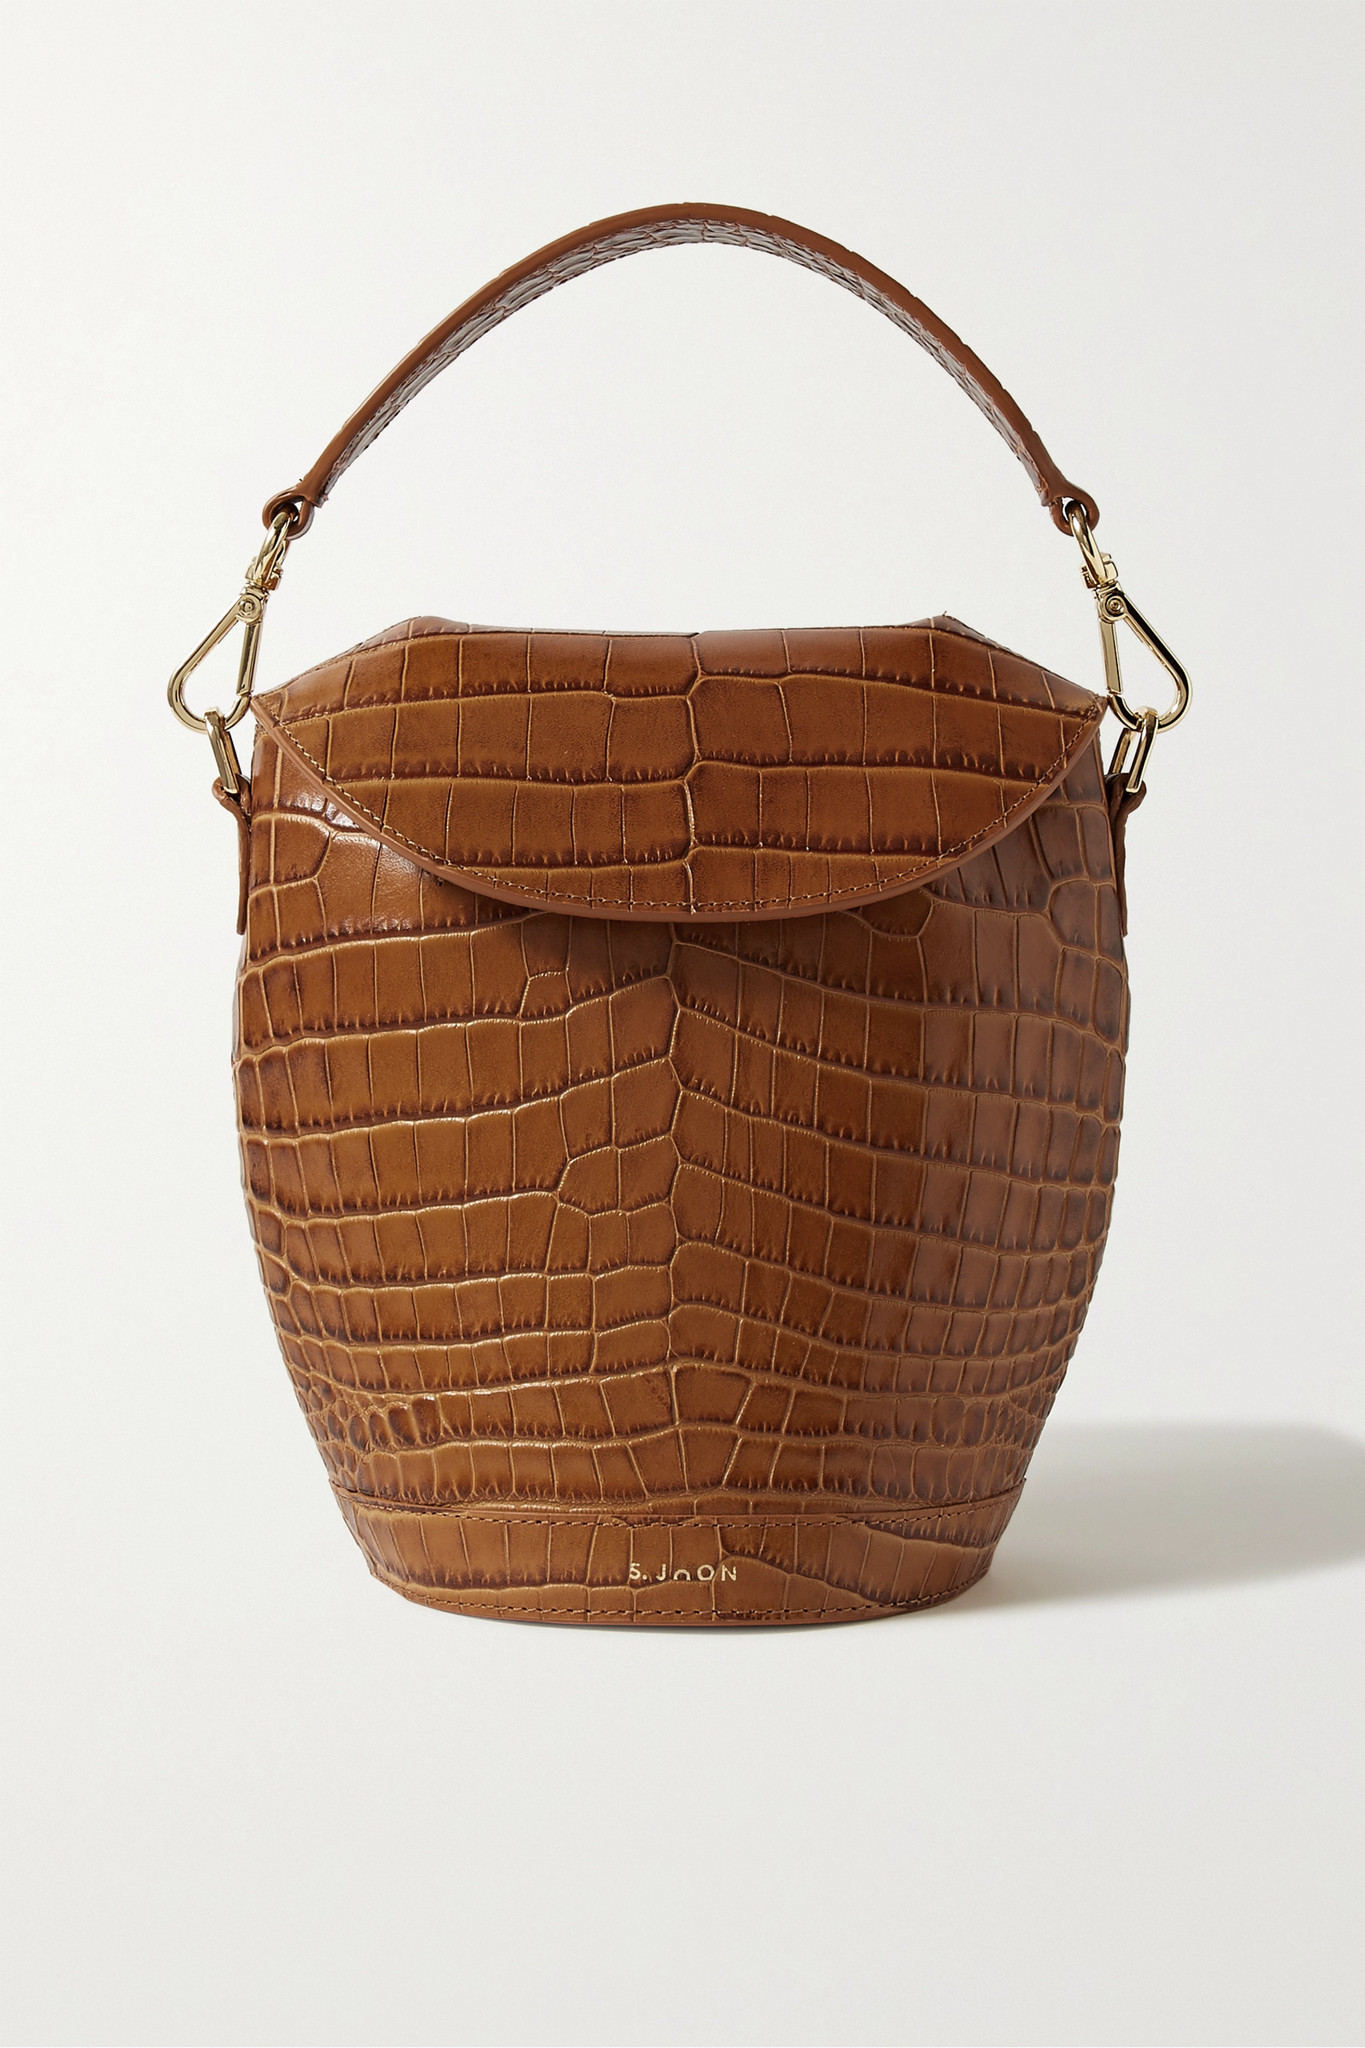 S.JOON - Milk Pail Croc-effect Leather Tote - Brown - one size